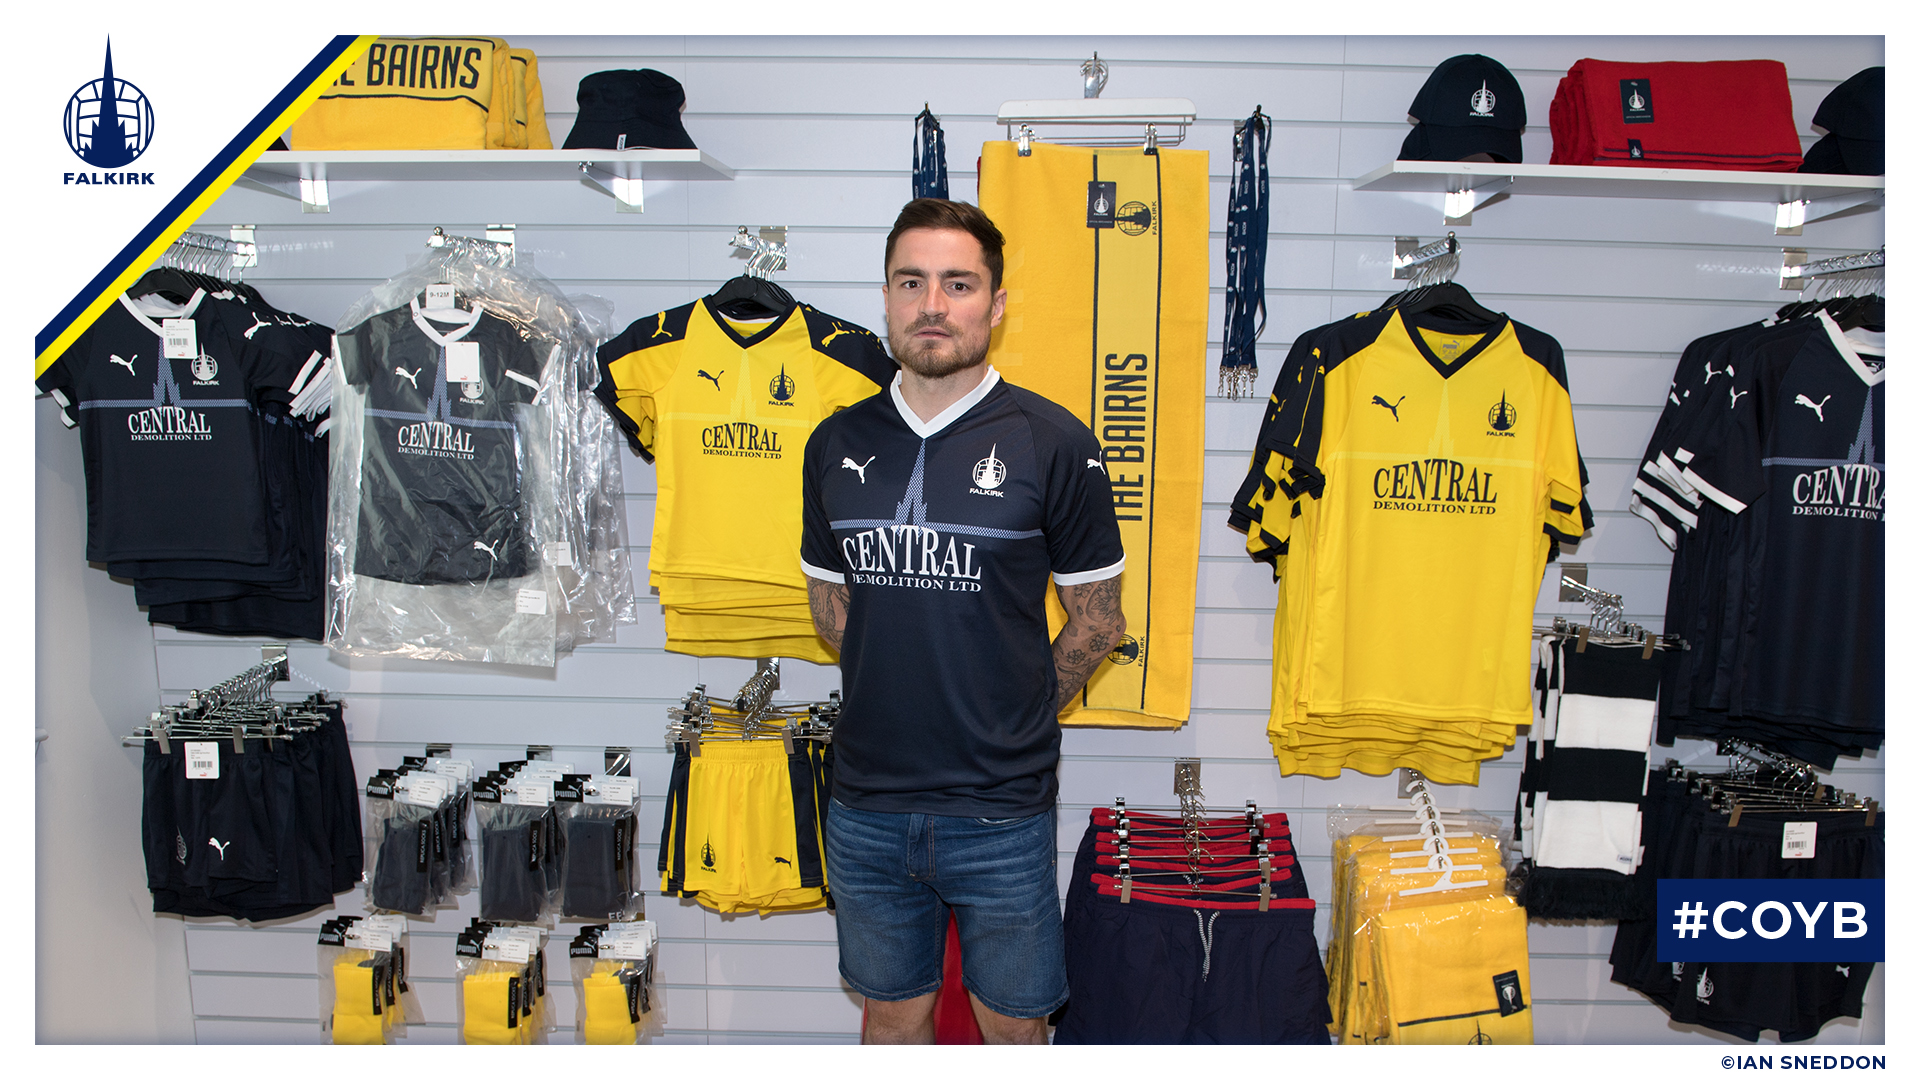 Come along to The Falkirk ...  sc 1 st  Falkirk Football Club & FALKIRK FC DOORS OPEN DAY u0026 KIT SALE LAUNCH u2013 Falkirk Football Club